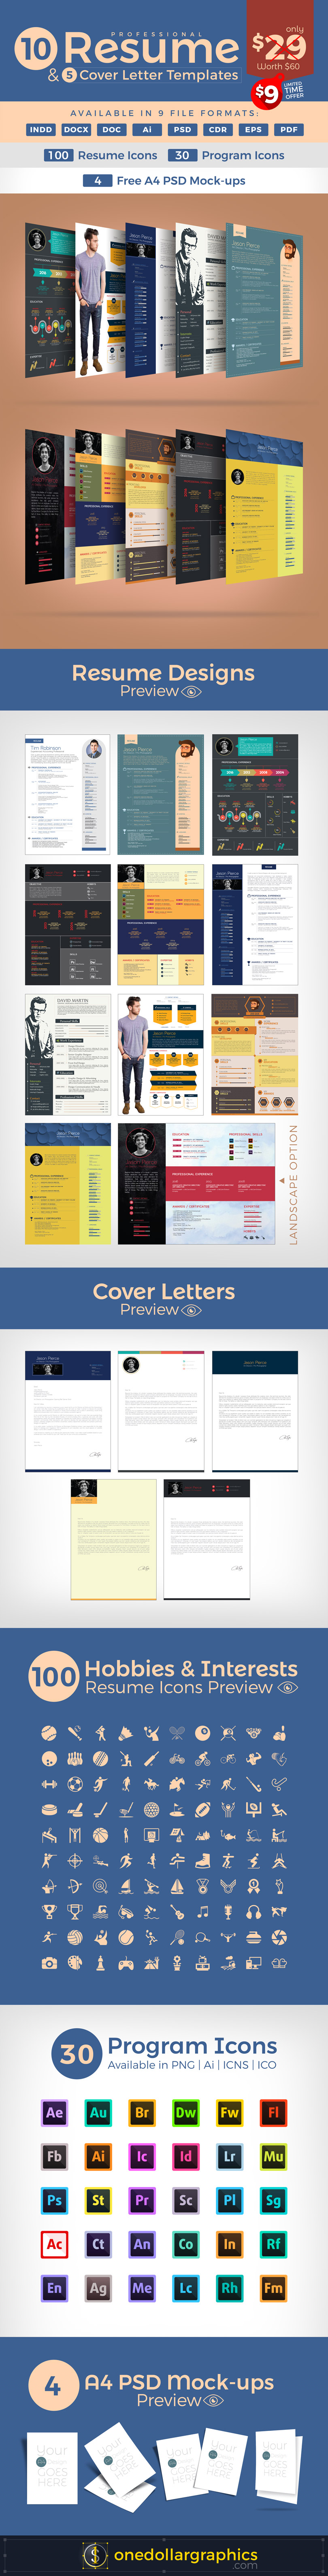 10-Resume-Designs-&-Cover-Letter-Templates-Deal-9